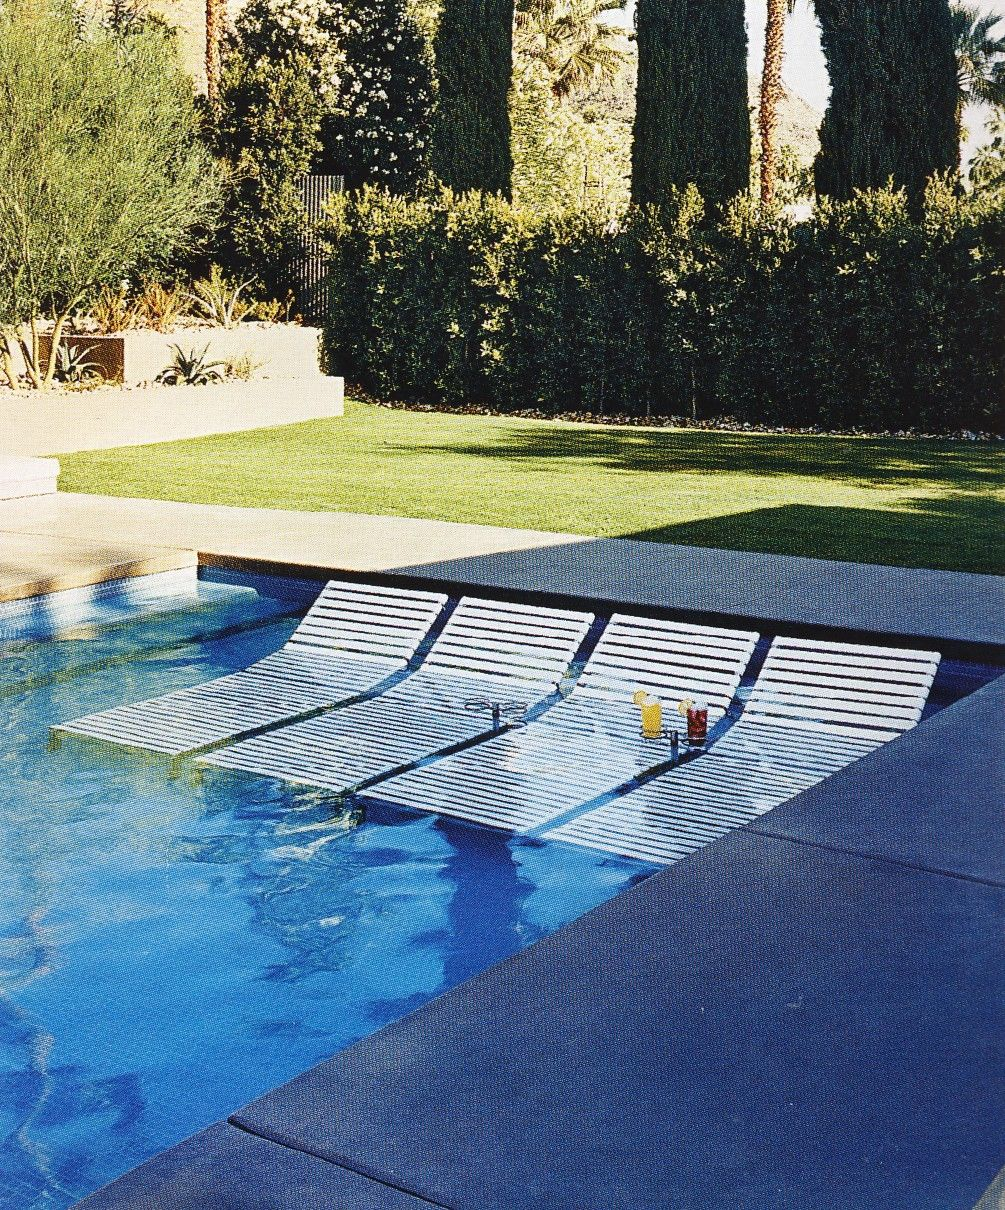 In Water Pool Chairs Fishing Chair Legs Transats Dans La Piscine Sun Loungers The Kimwouters98